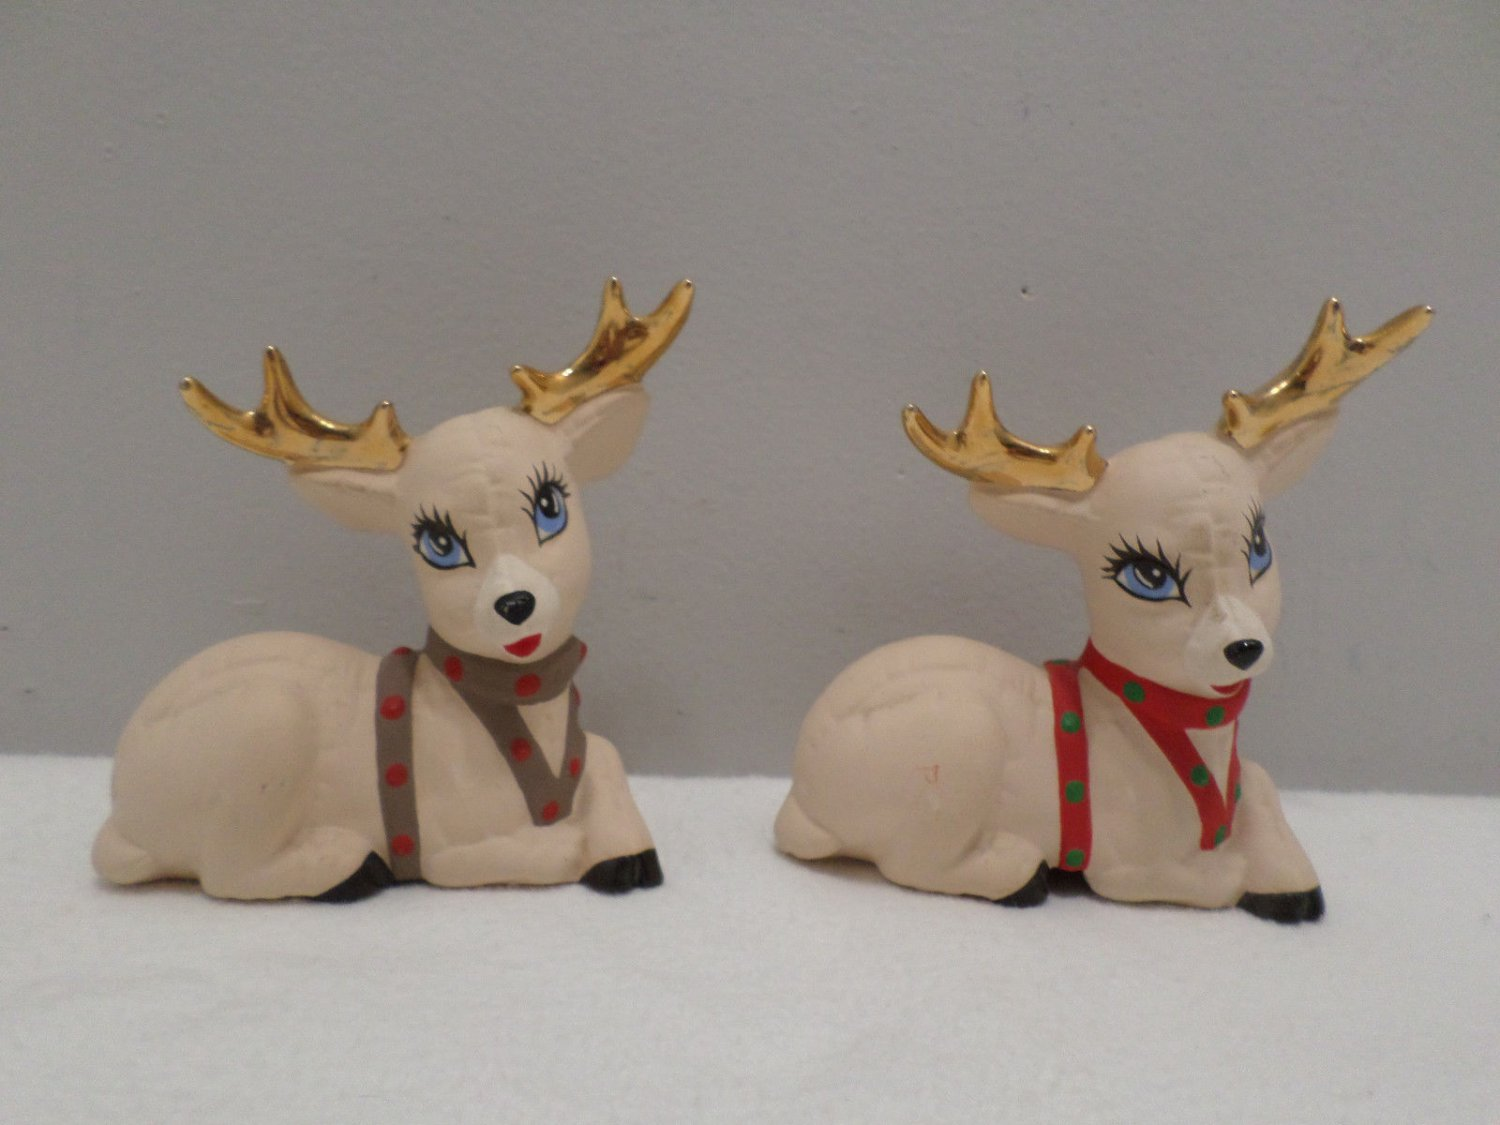 Christmas Figurines Reindeer with Gold Antlers Two Pcs